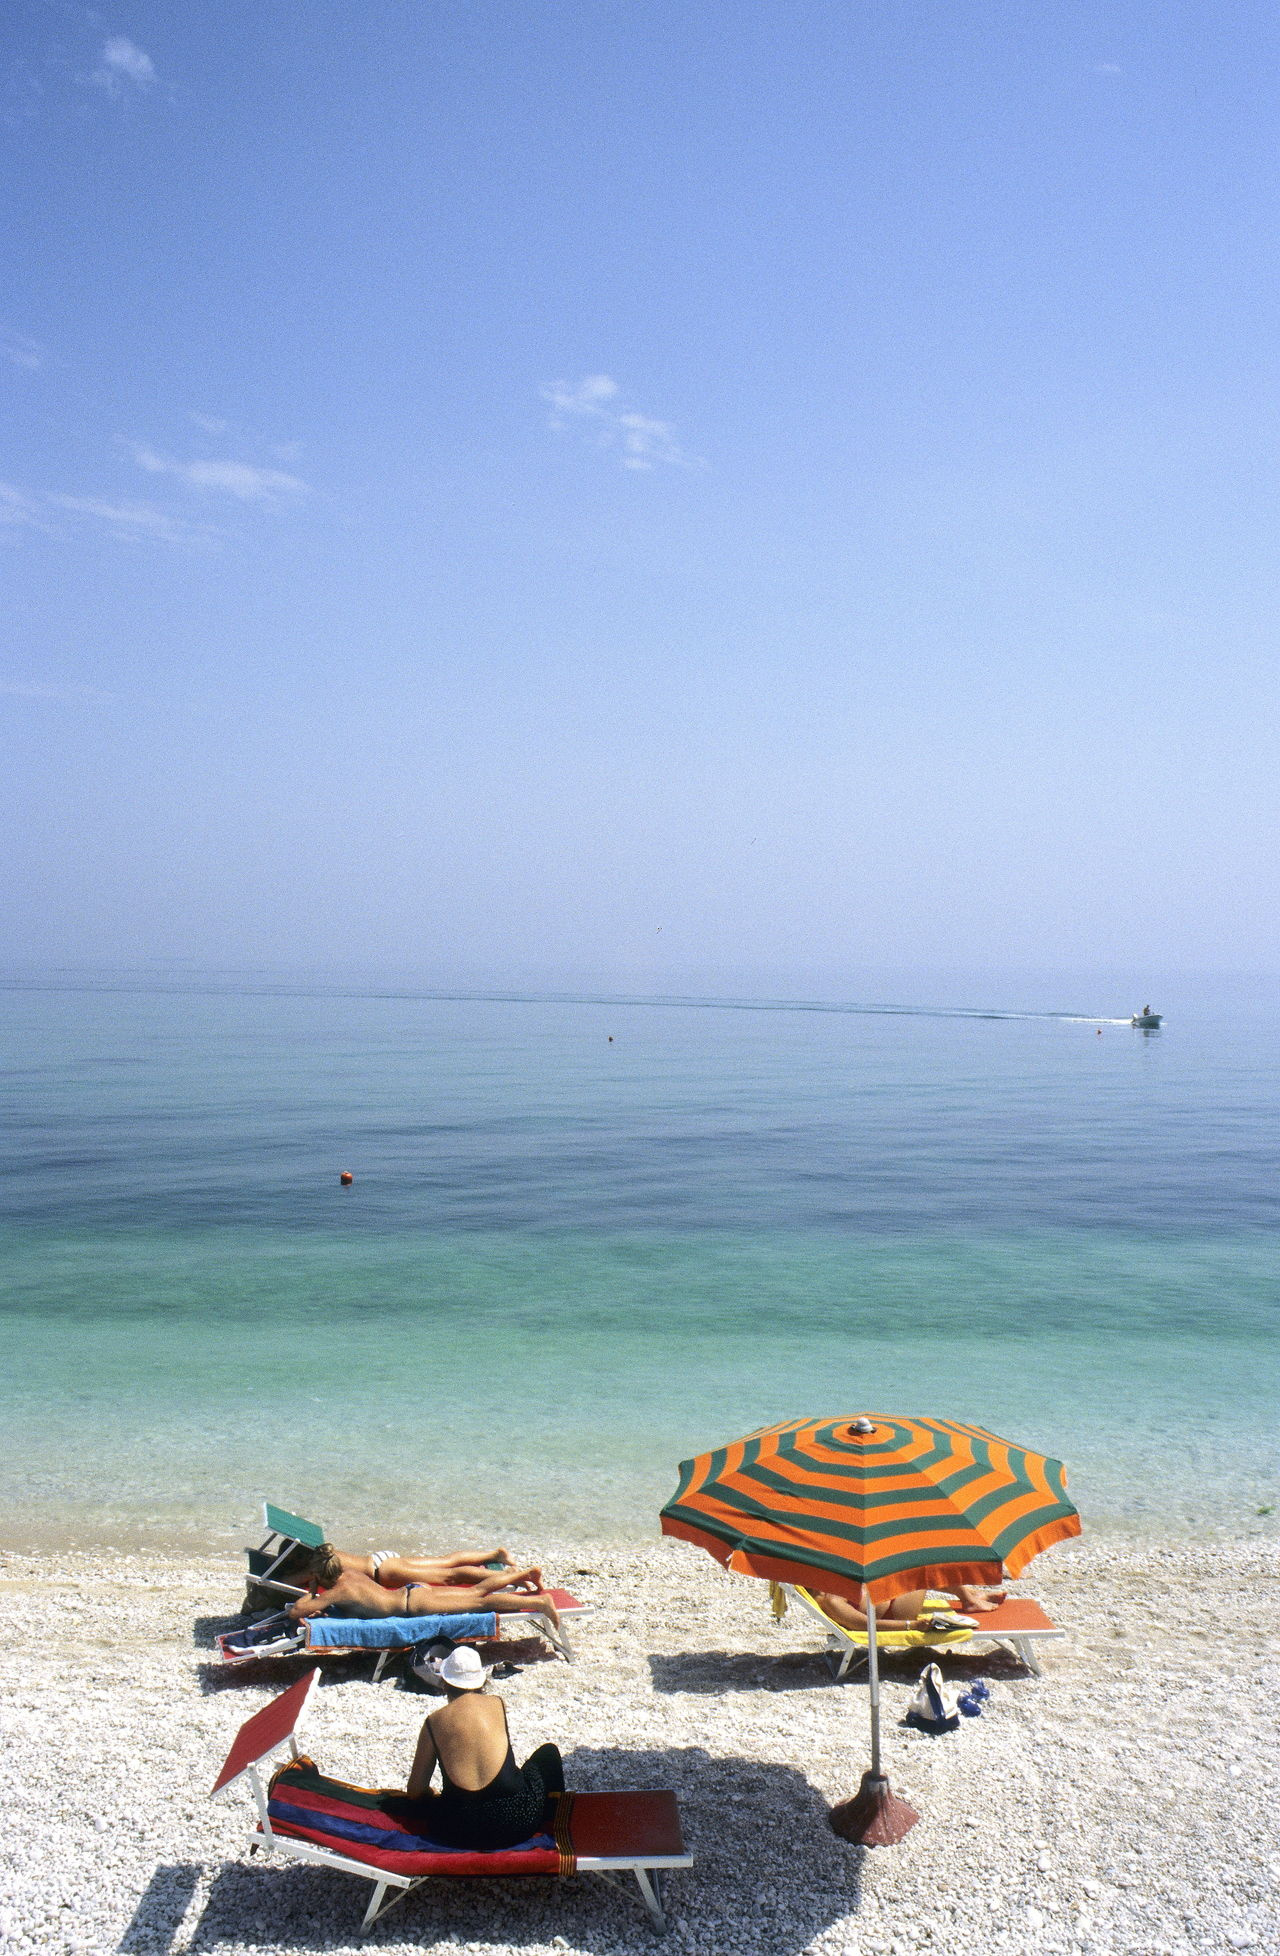 Adriatic Adriatic Sea Beach Beachphotography Beauty In Nature Day Horizon Over Water Italy Le Marché Nature Outdoors Parasol Scenics Sea Sky Sunbathing Sunshine Tranquil Scene Tranquility Umbrella Waiting Water